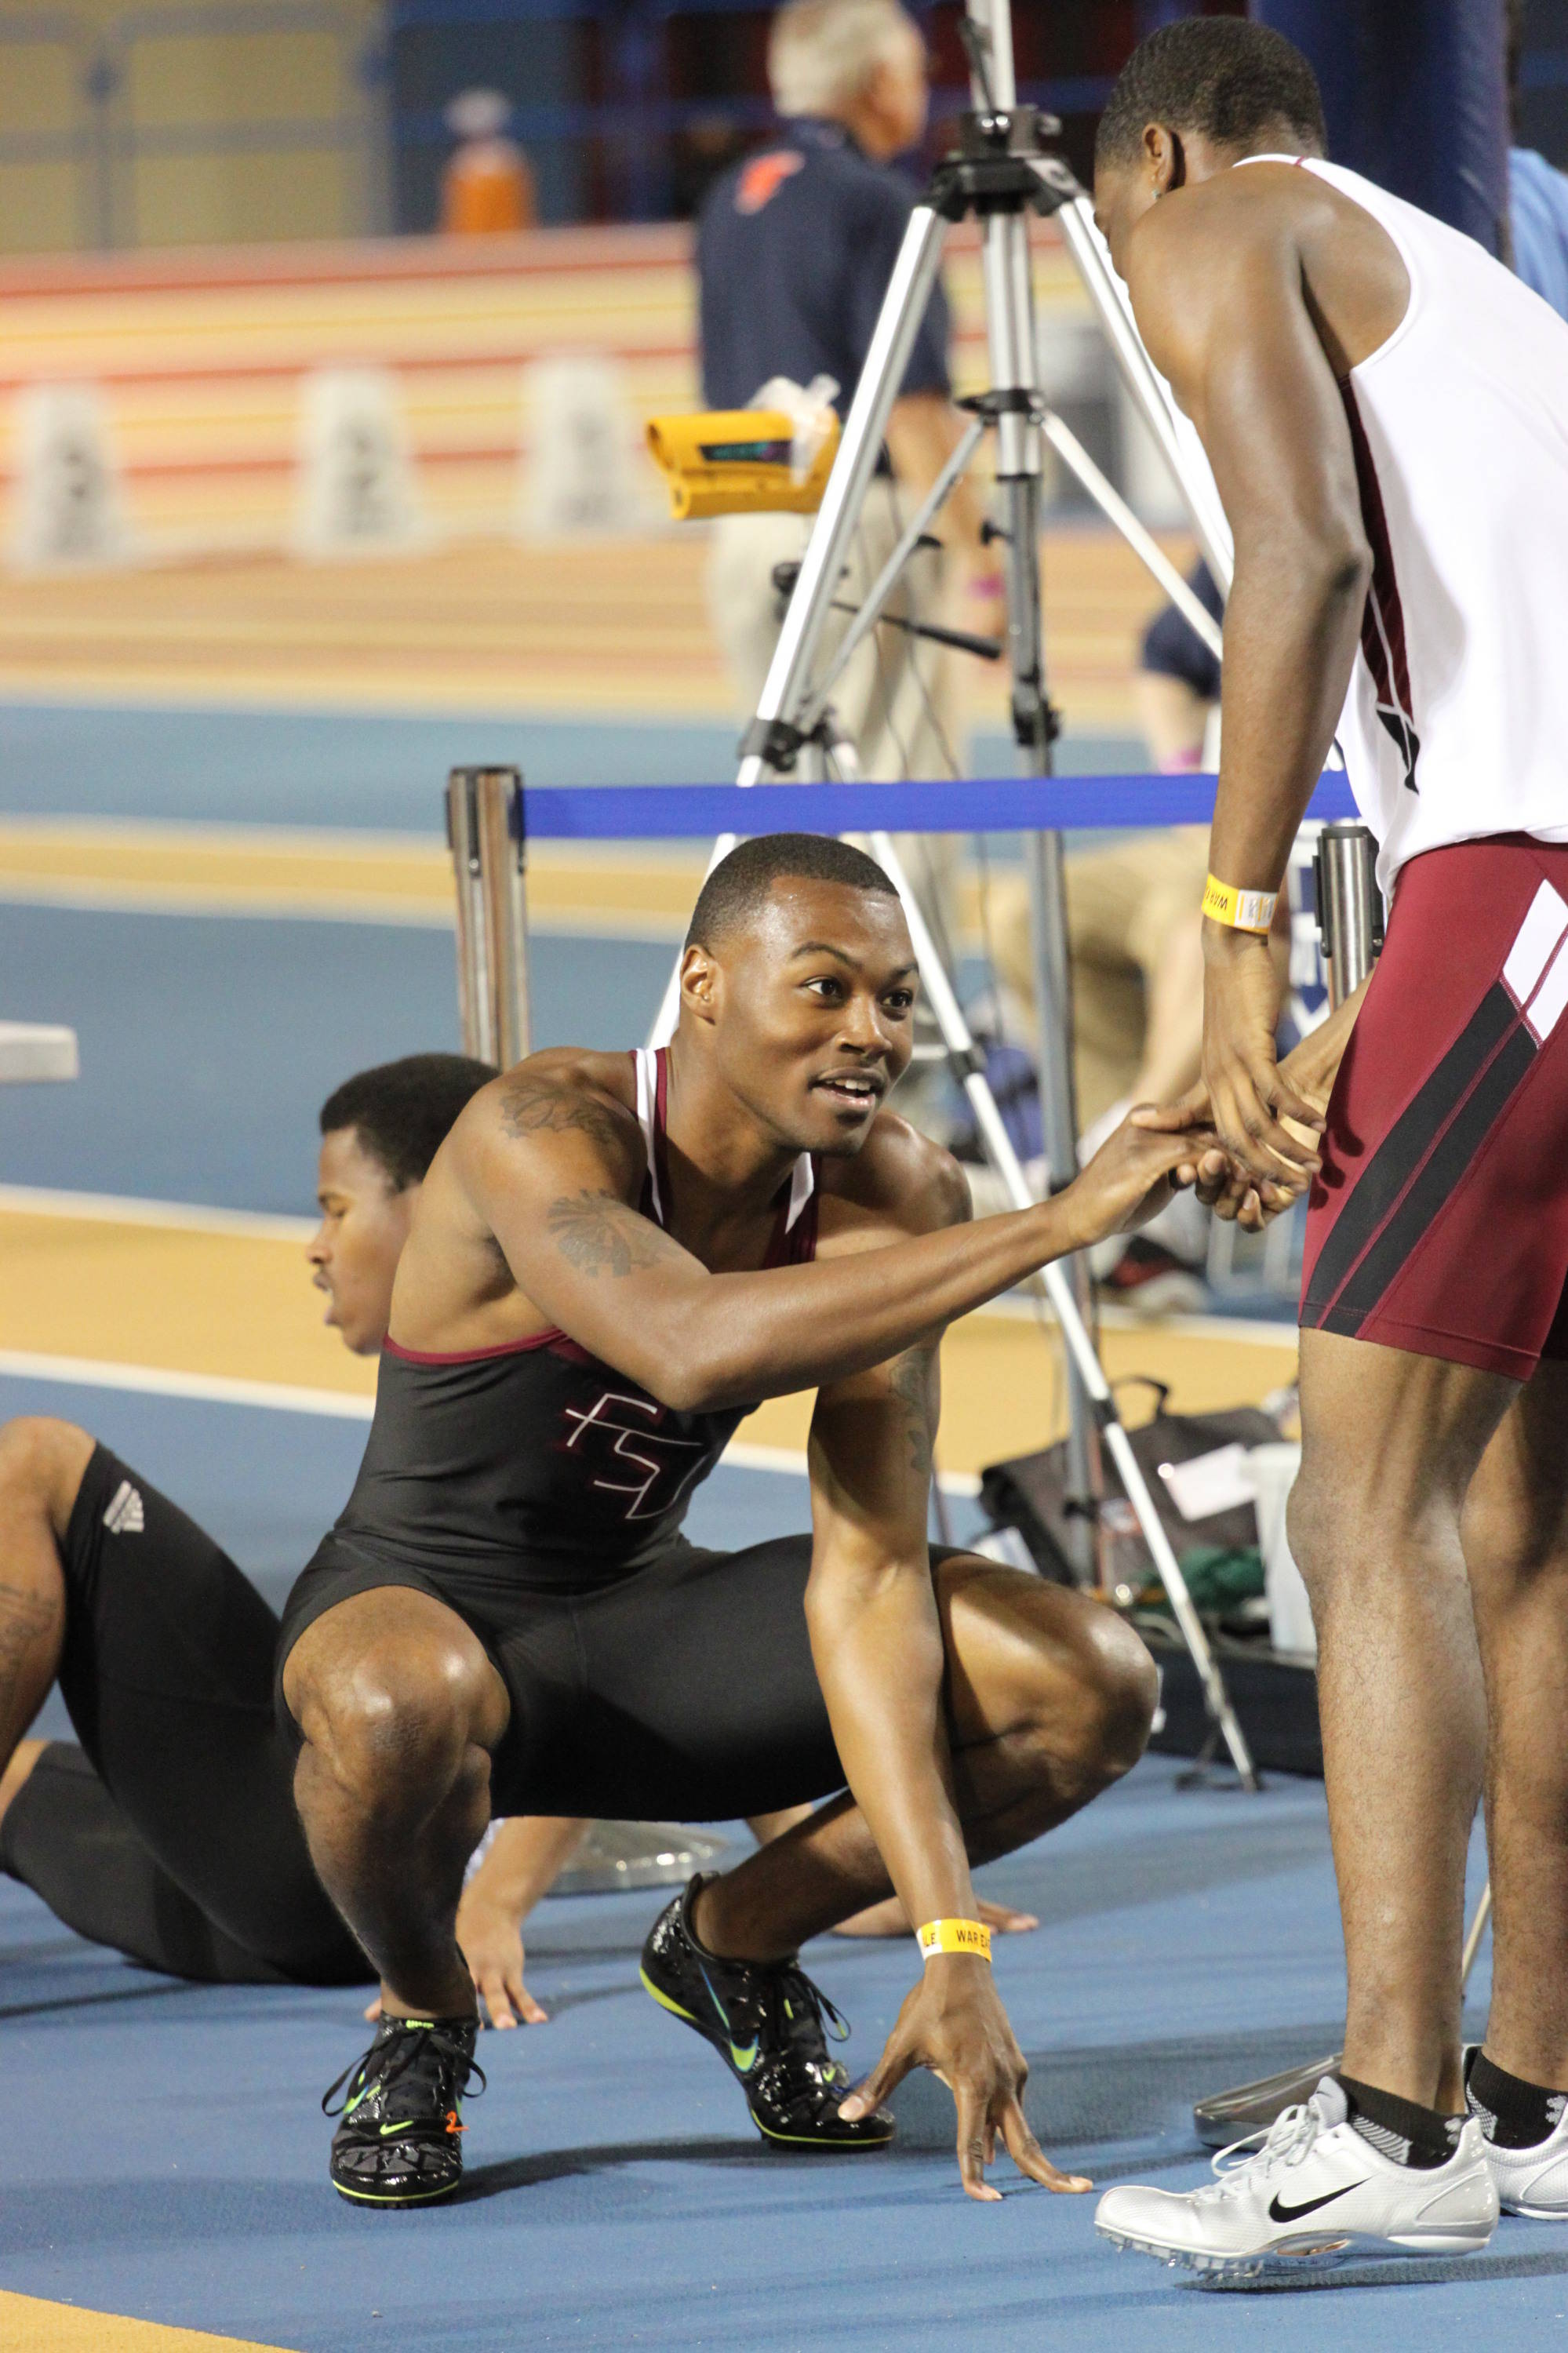 Williams get a congratulatory handshake from a South Carolina runner at the conclusion of his 400 leg.